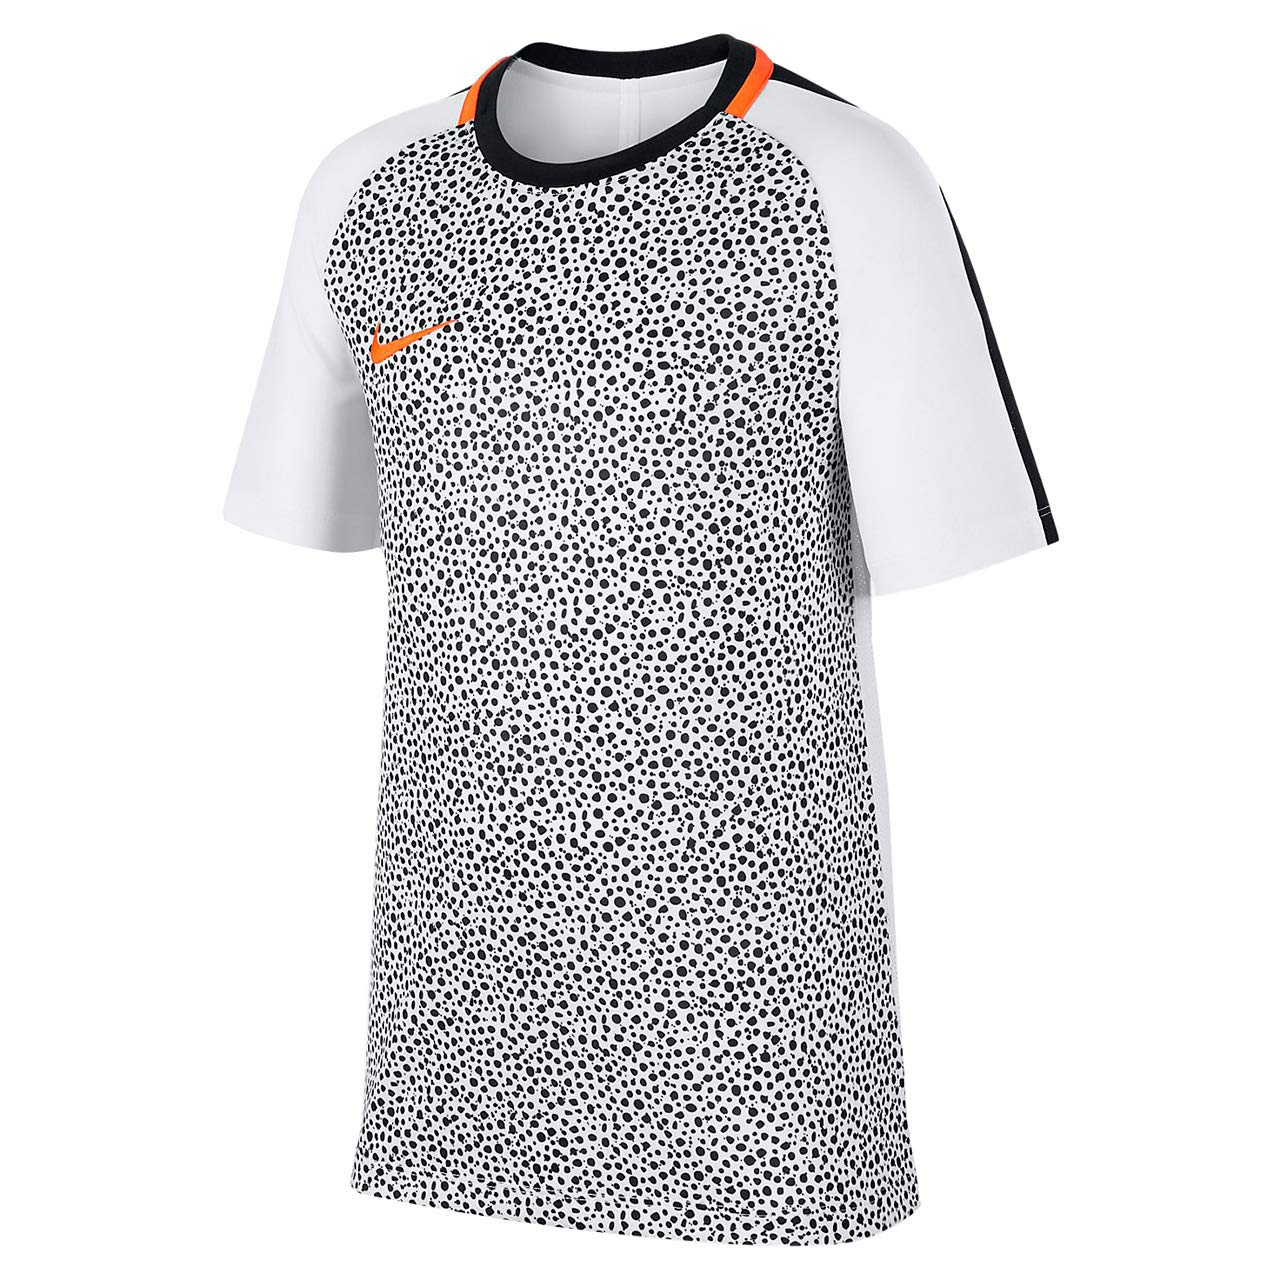 30317972 Nike Boys' Dry Academy Gx2 T-Shirt: Amazon.co.uk: Clothing